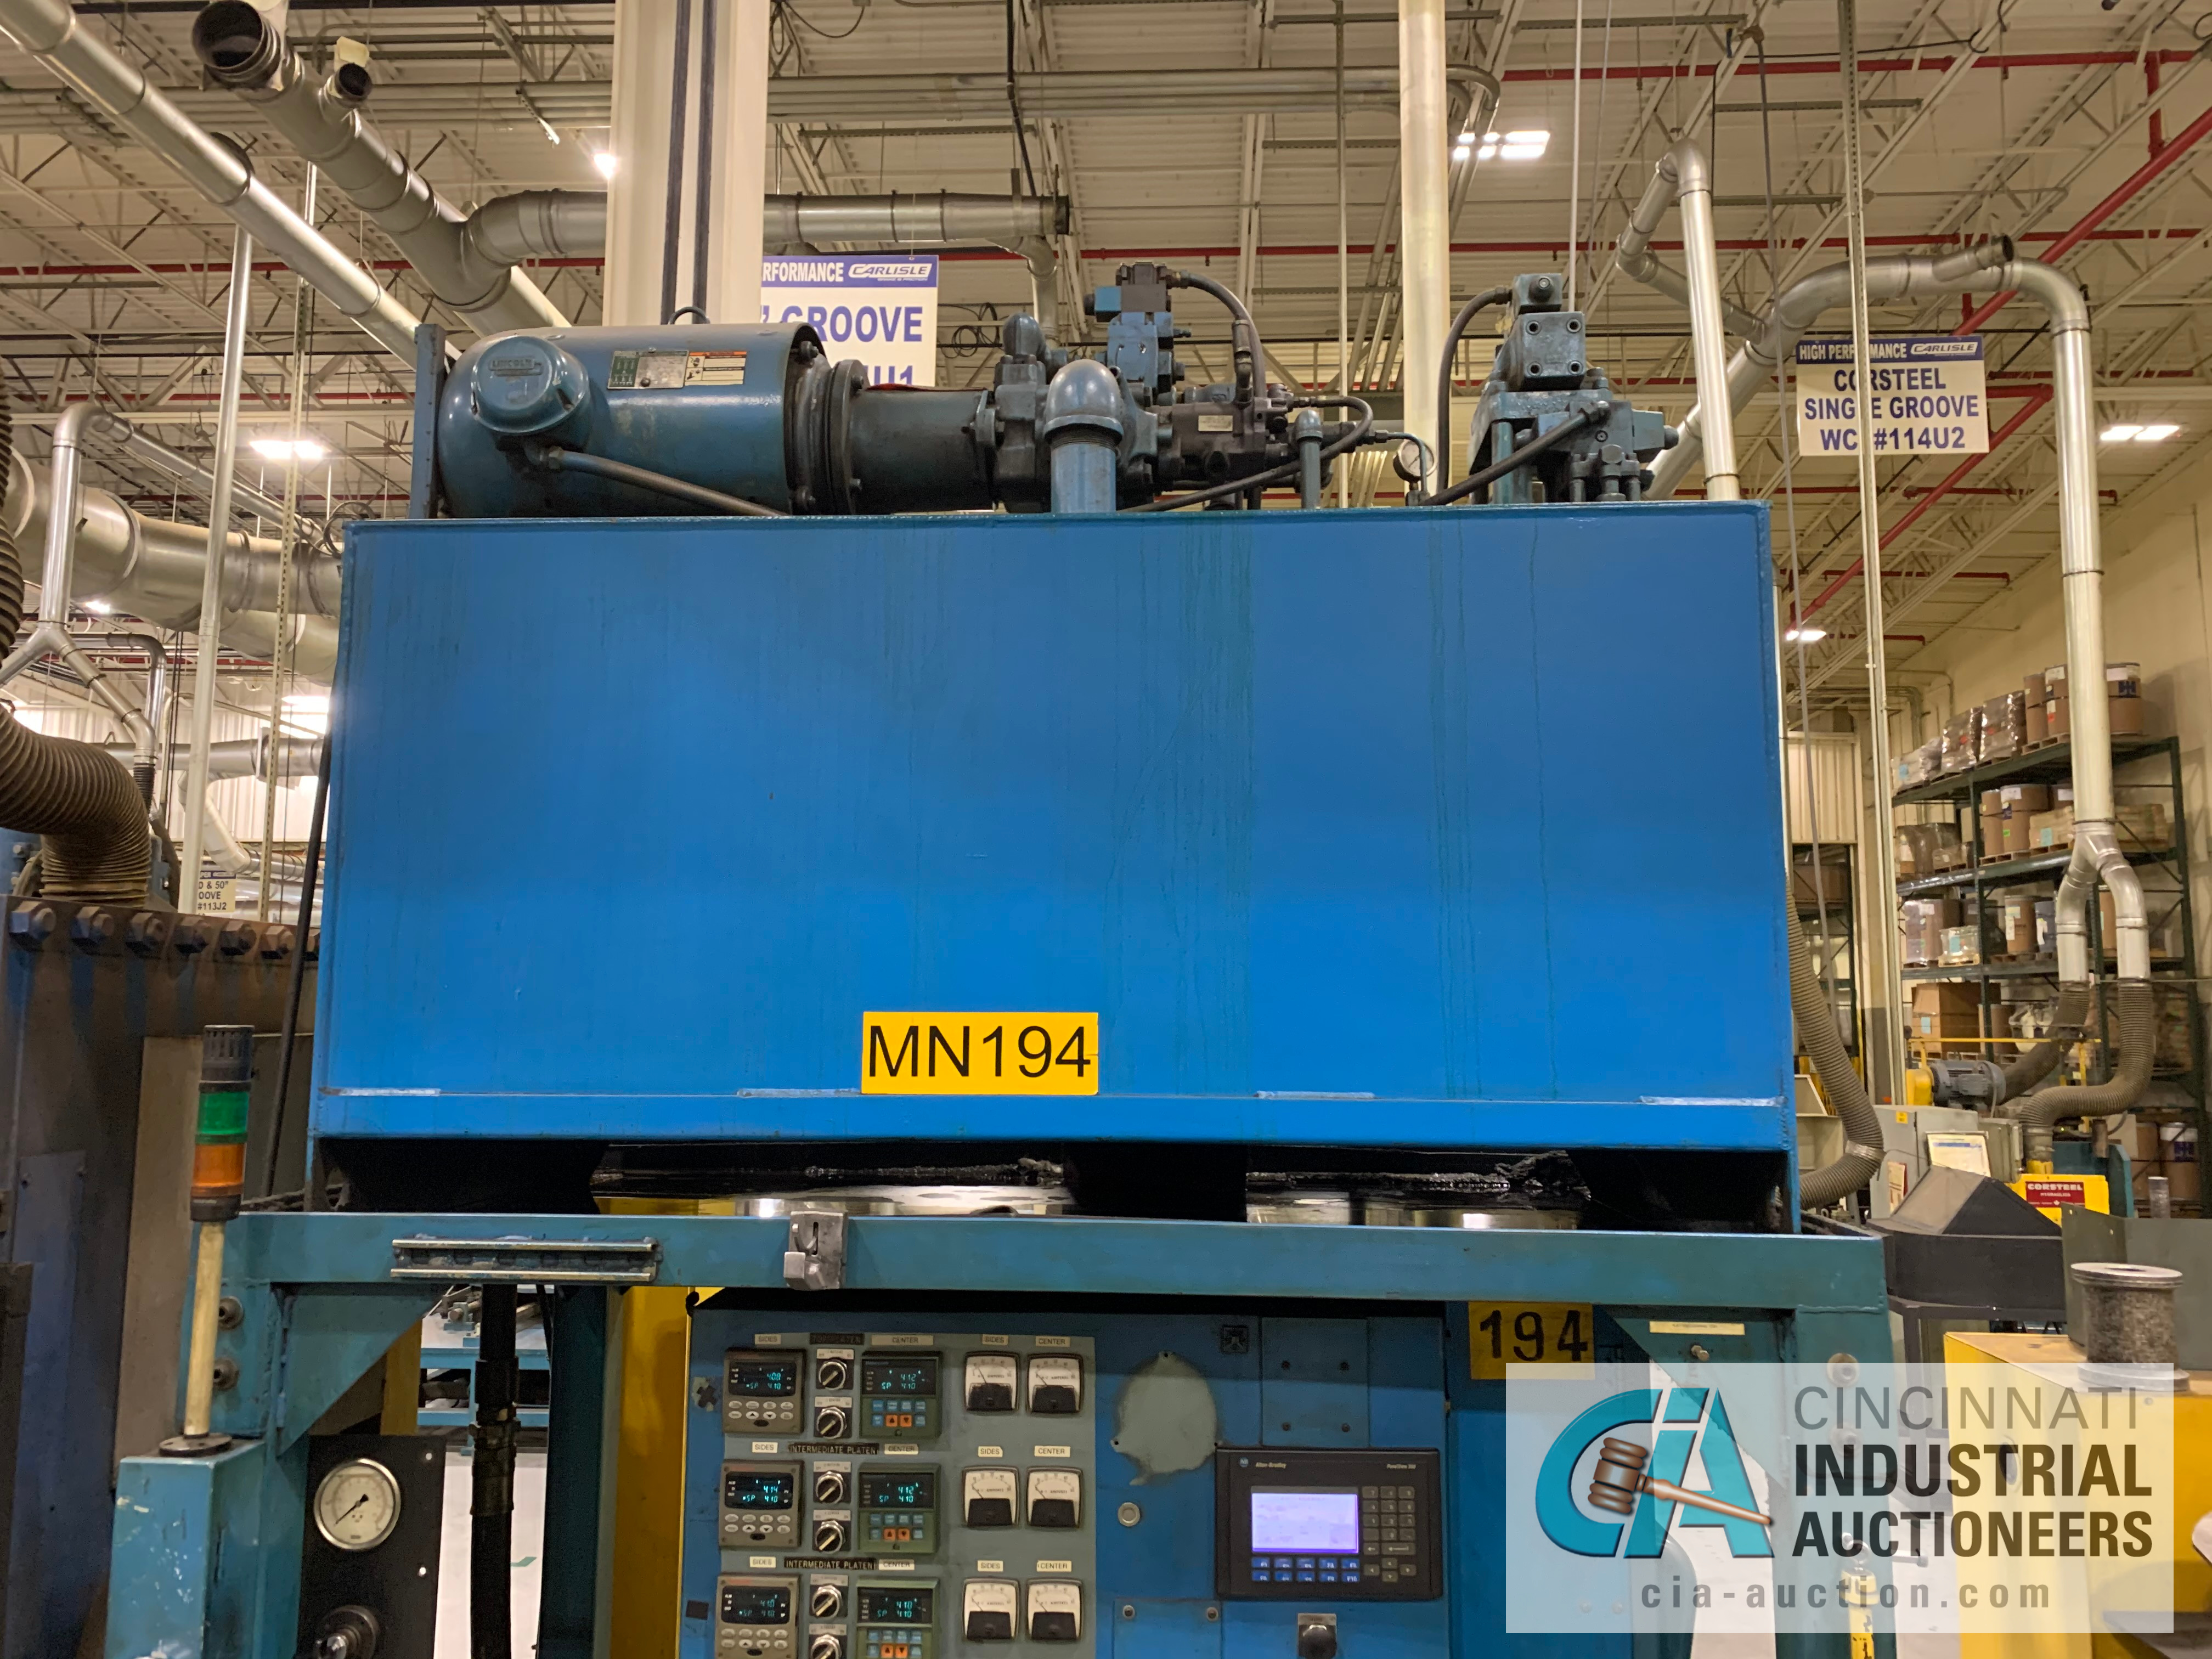 """32"""" 5-PLATTEN HEATED PRESS **RIGGING FEE DUE TO SHOEMAKER $2,250.00** - Image 4 of 7"""